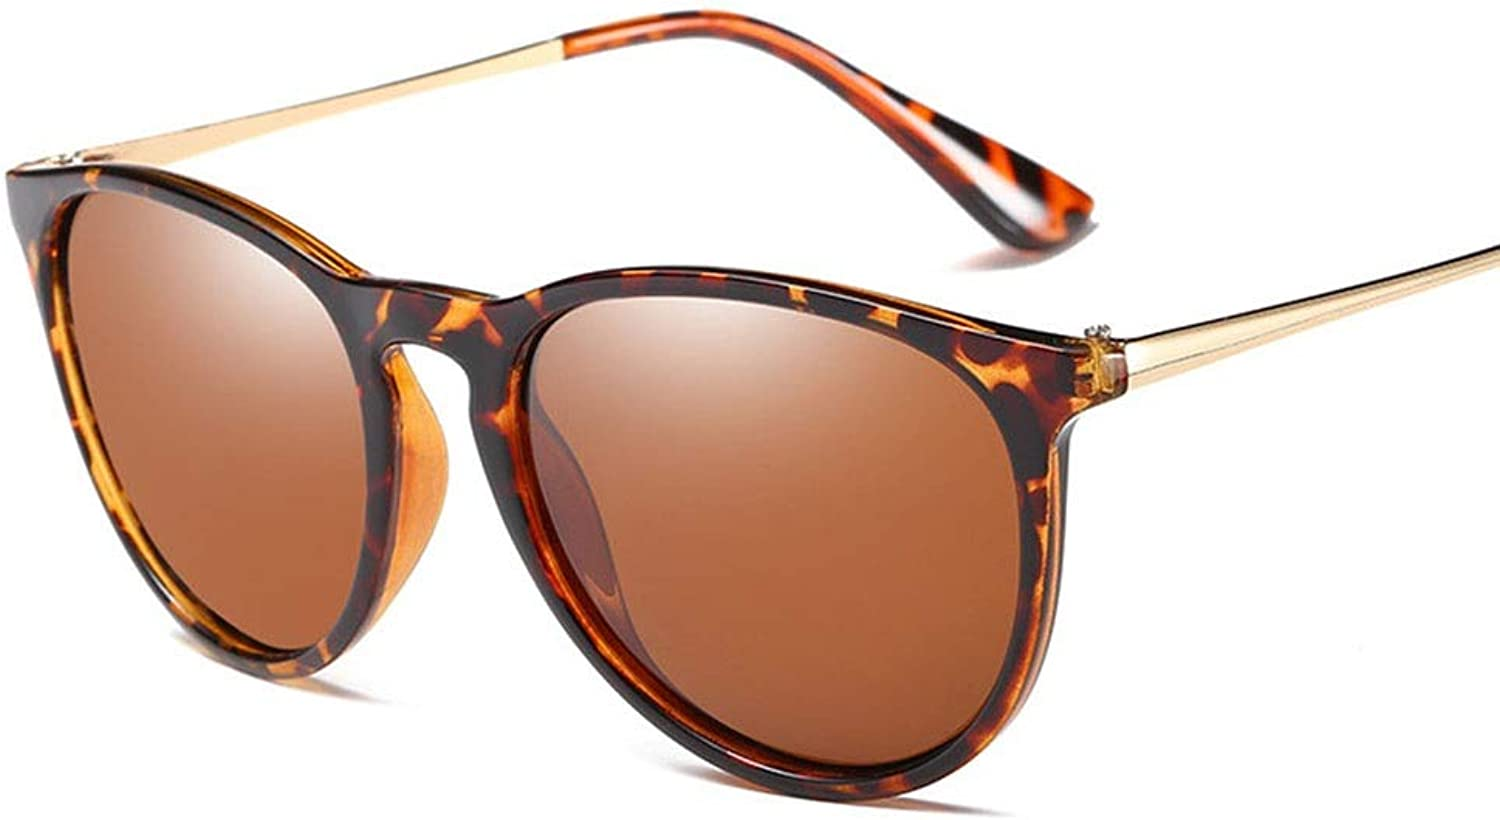 Women's Vintage Fashion Polarized Sunglasses for Beach, Travel,Driving (color   Leopard Brown)